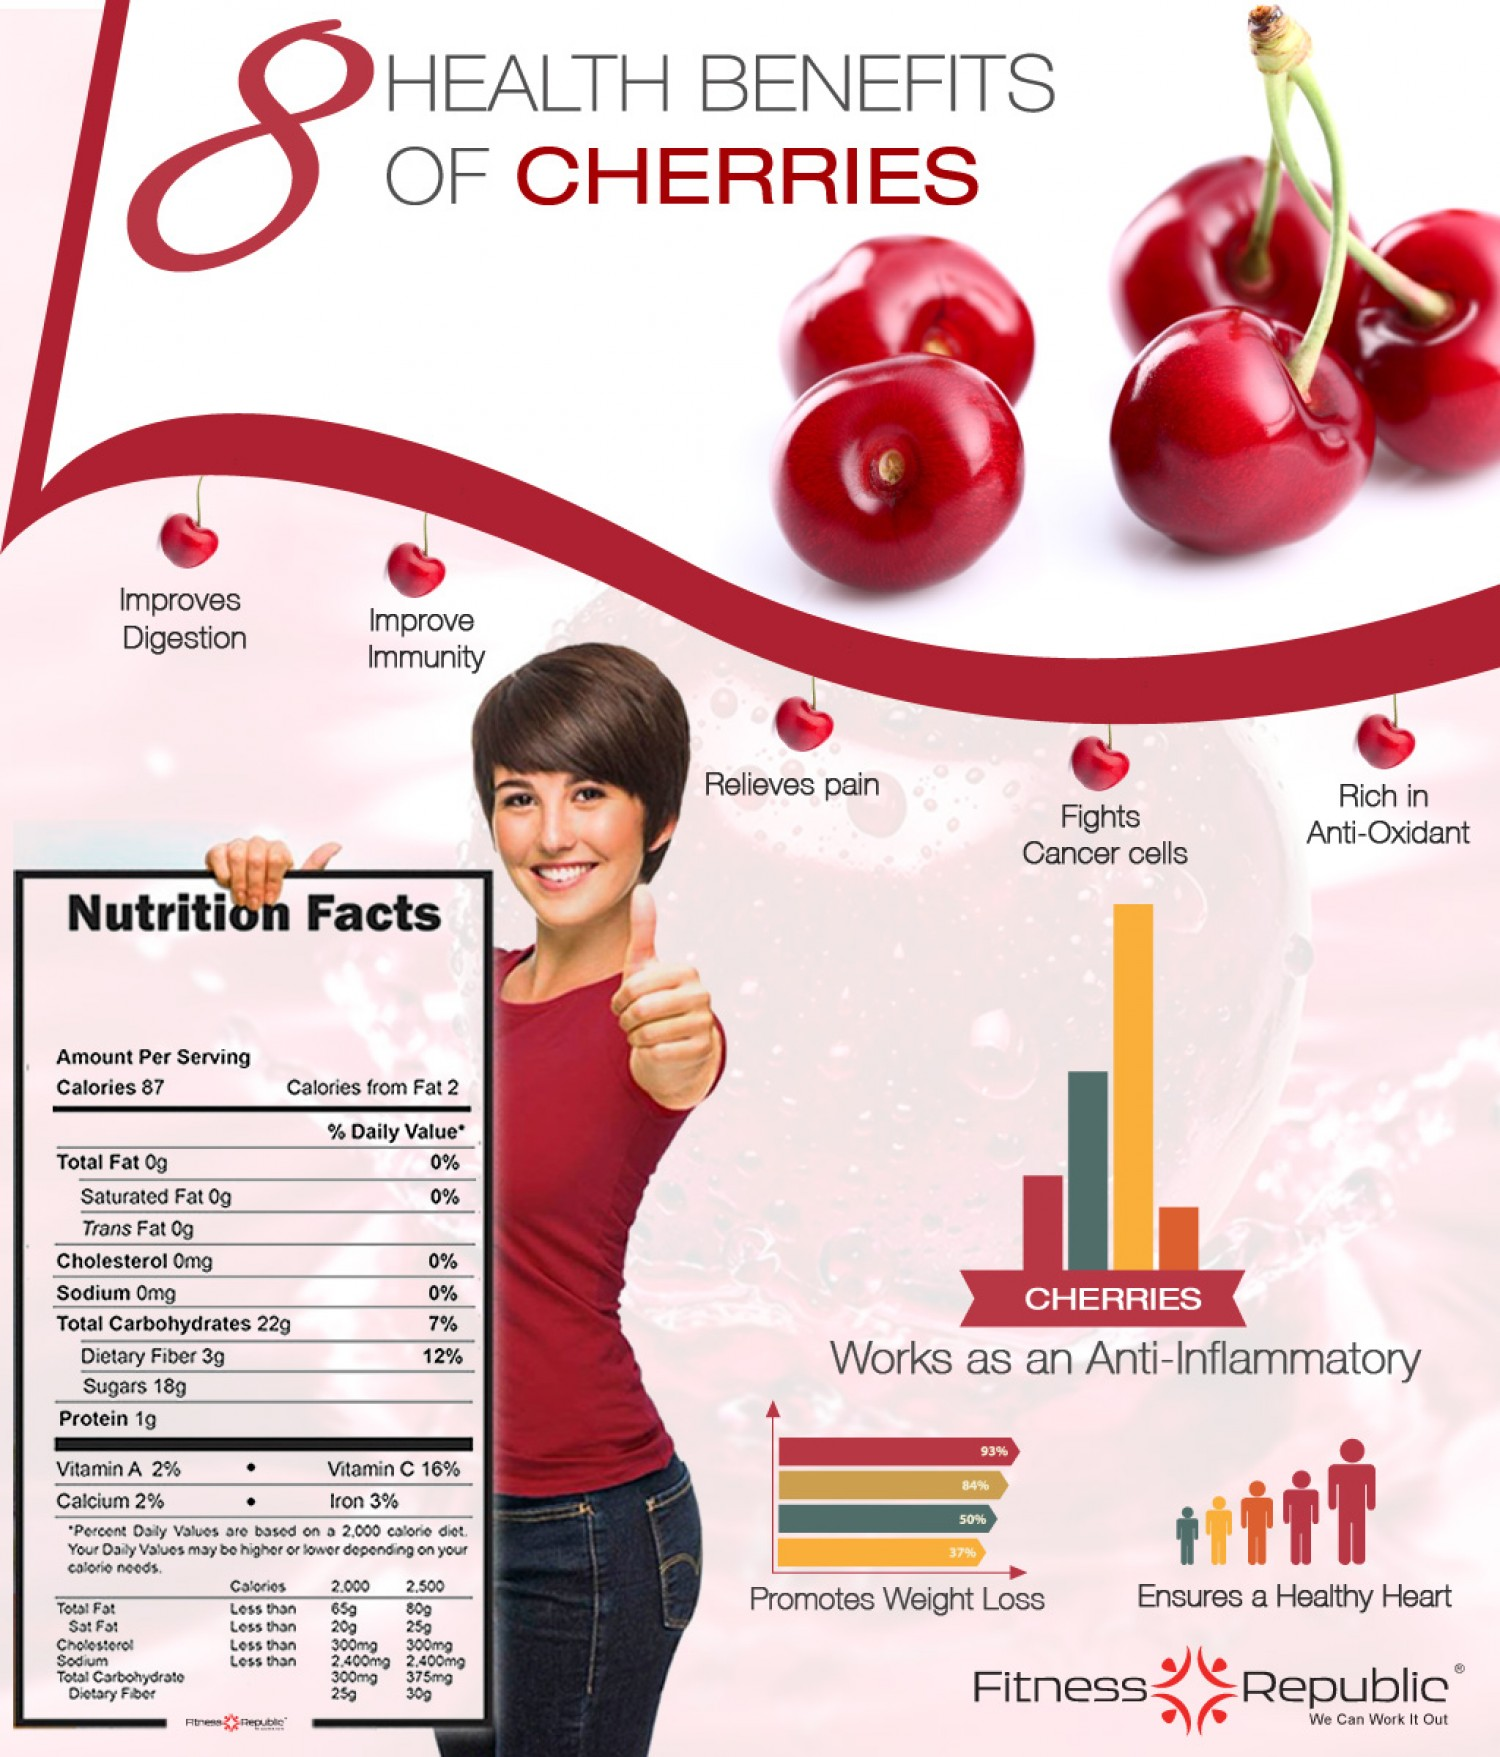 Week's Favorites - Cherry Benefits